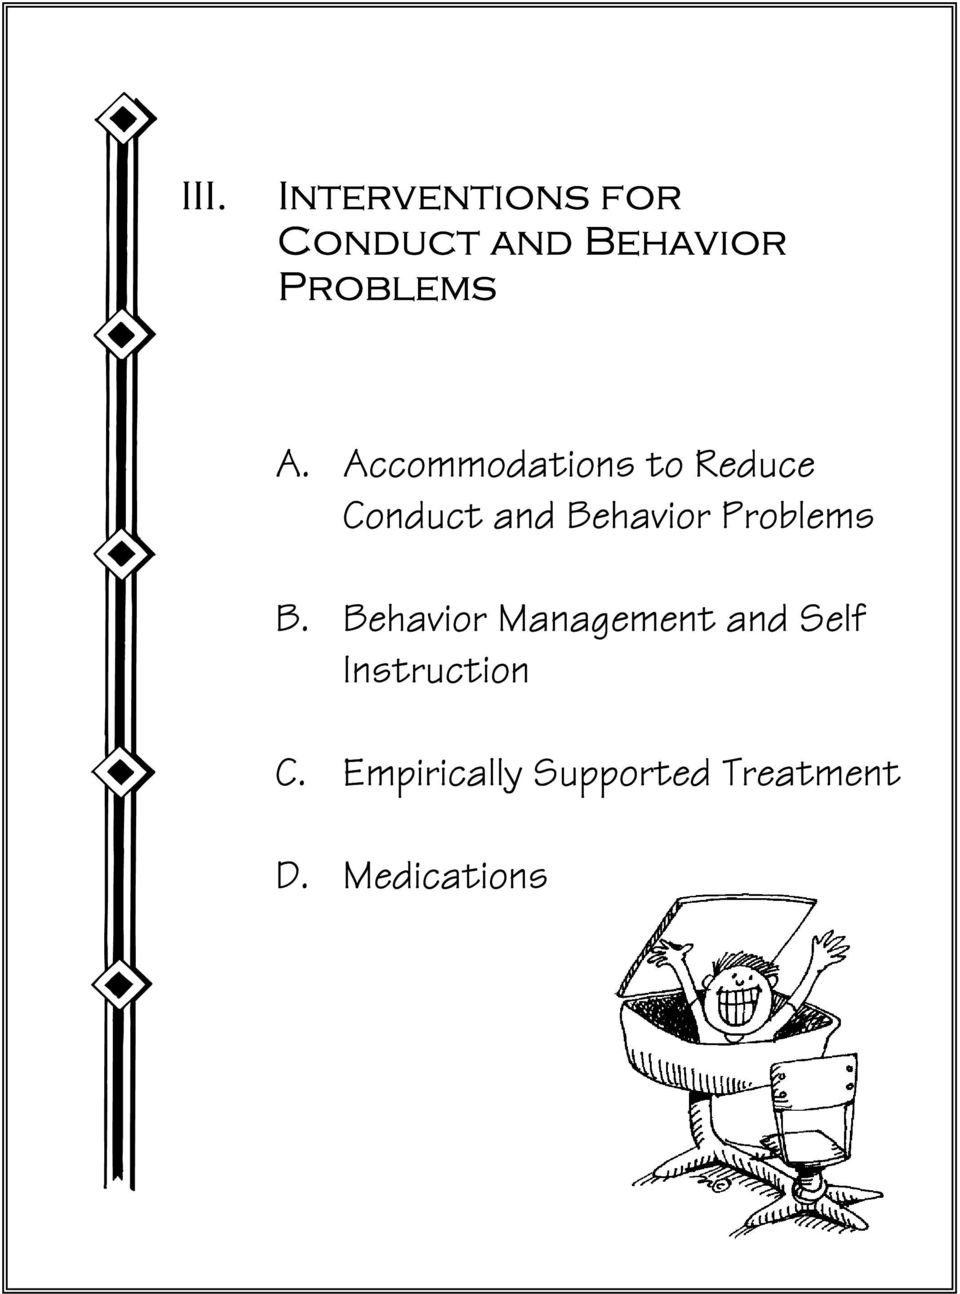 Accommodations to Reduce Conduct and Behavior